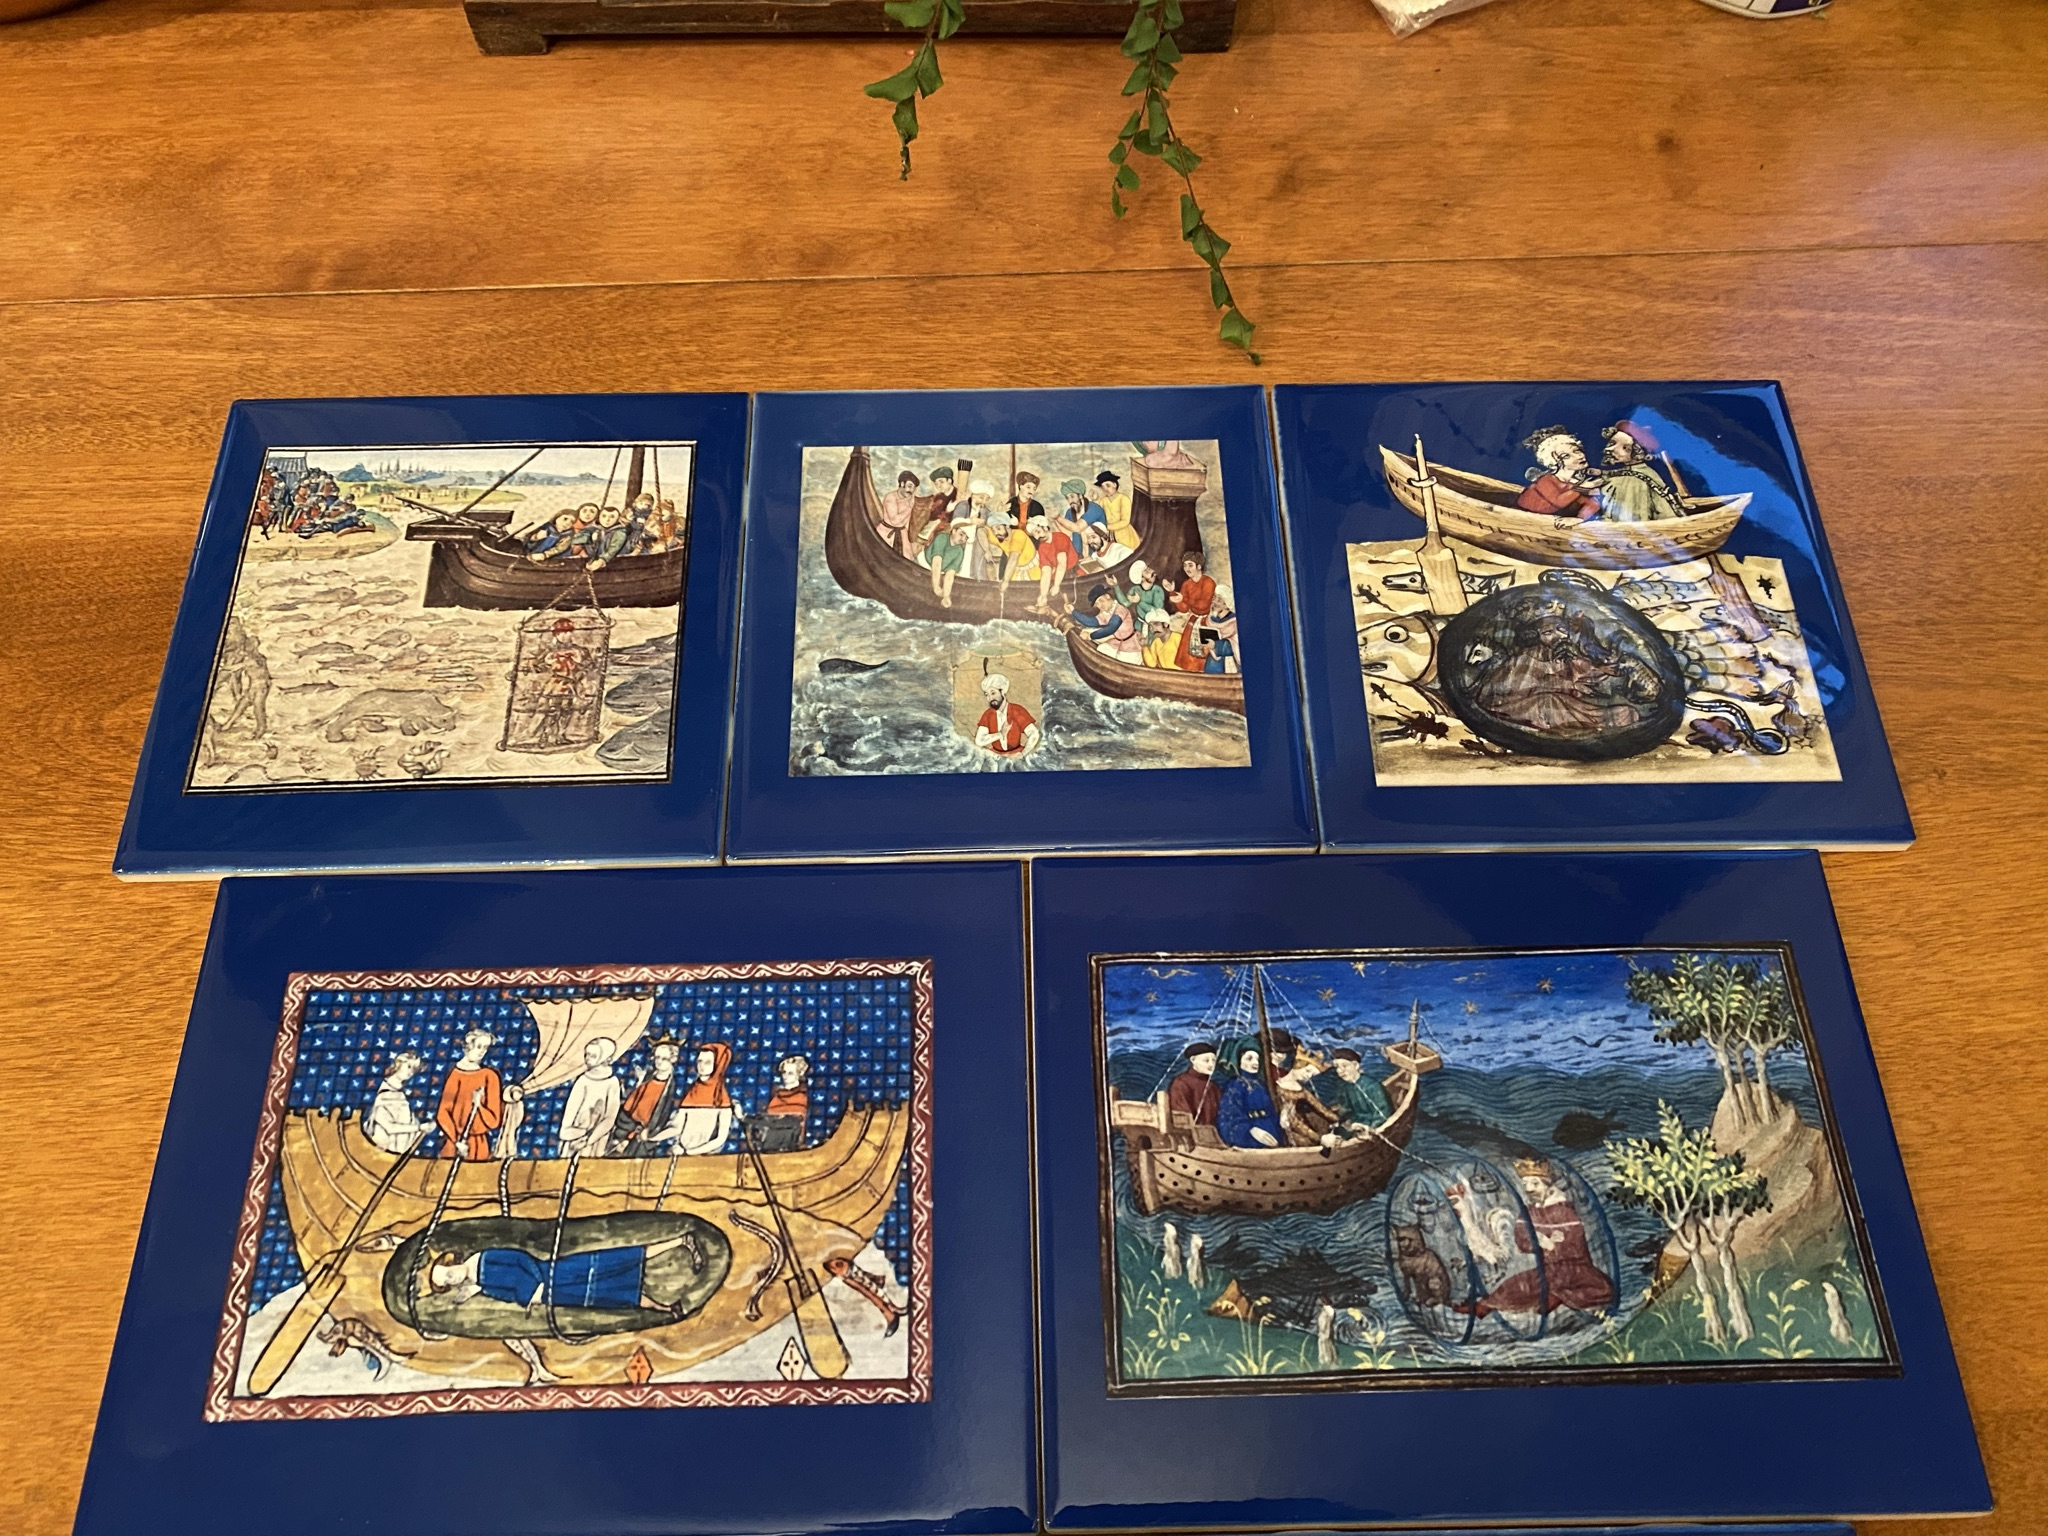 Alexander the Great tiles, square and rectangular